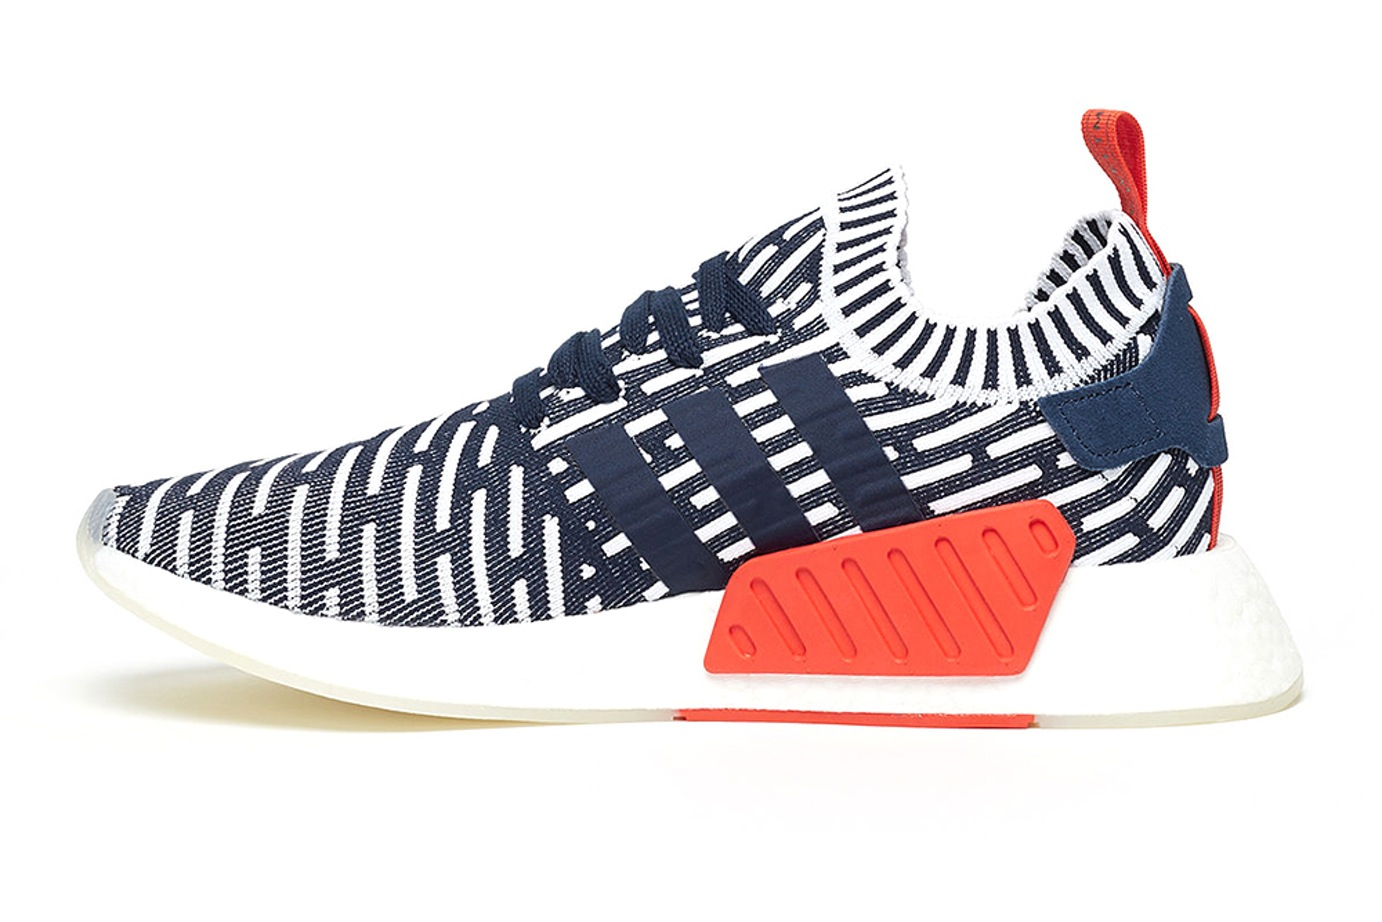 Adidas NMD R2 Primeknit Red/Black/White Men's Sneakers BB2910